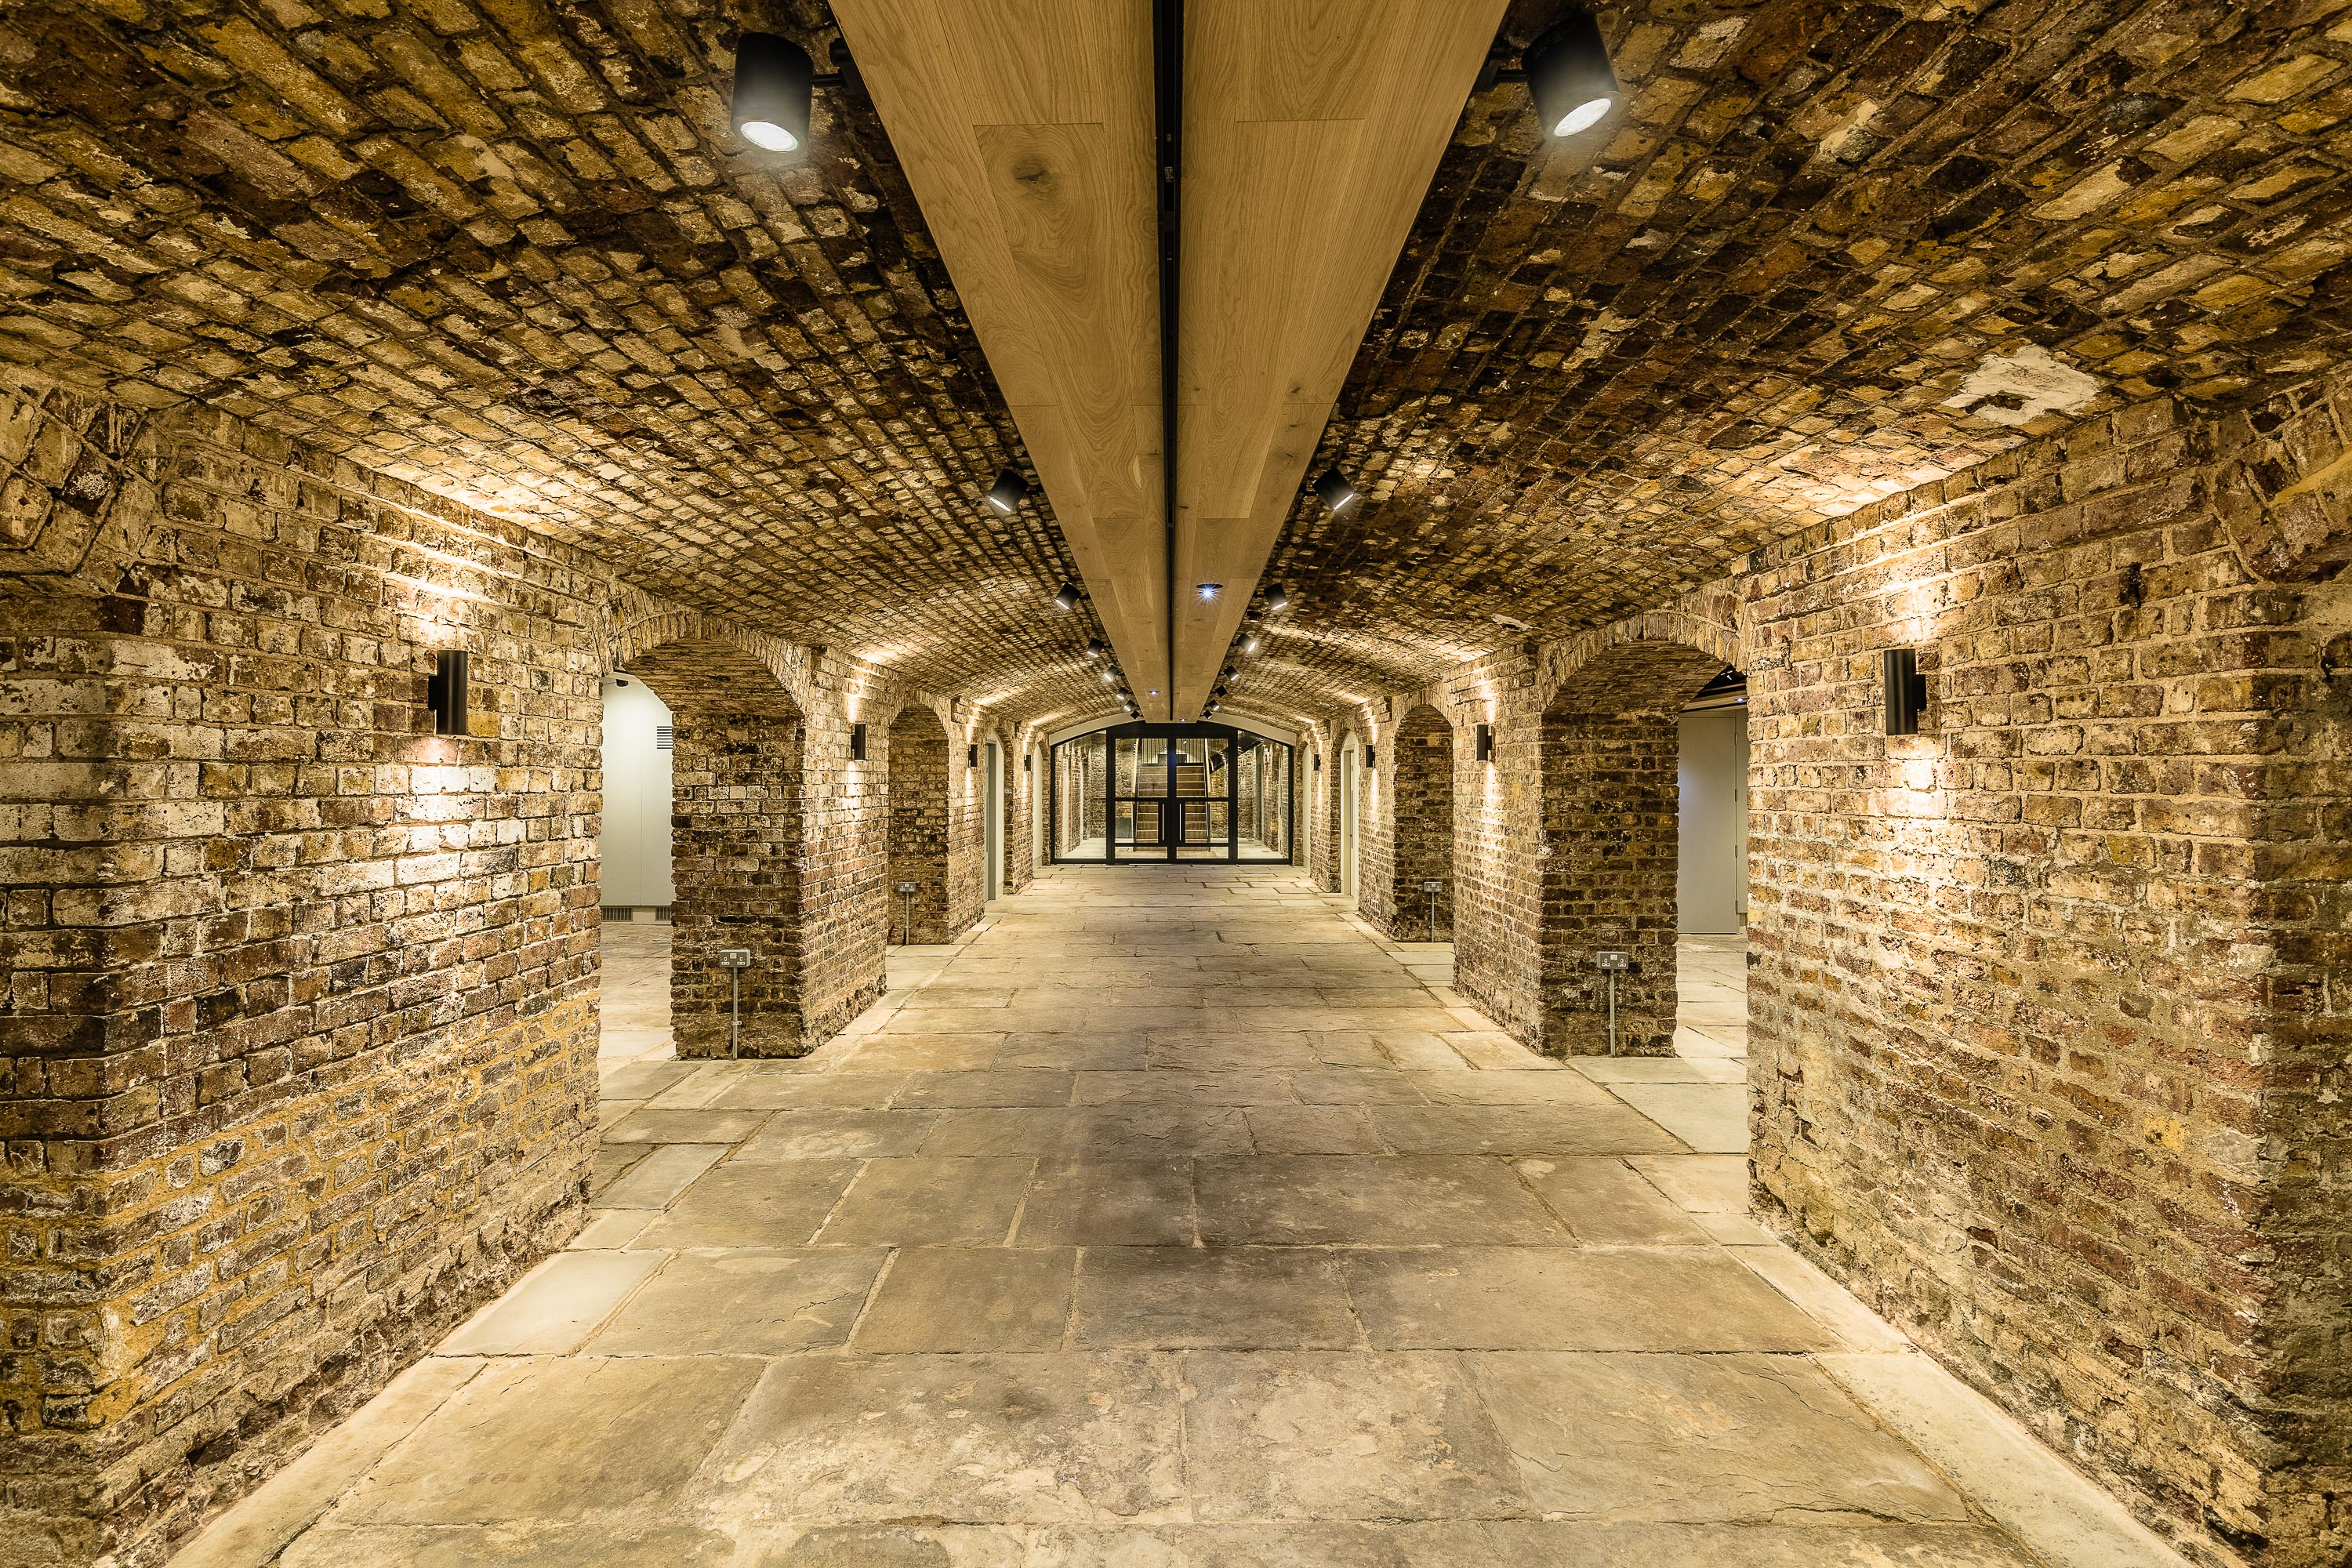 London Bridge Arches Private Venue Hire London